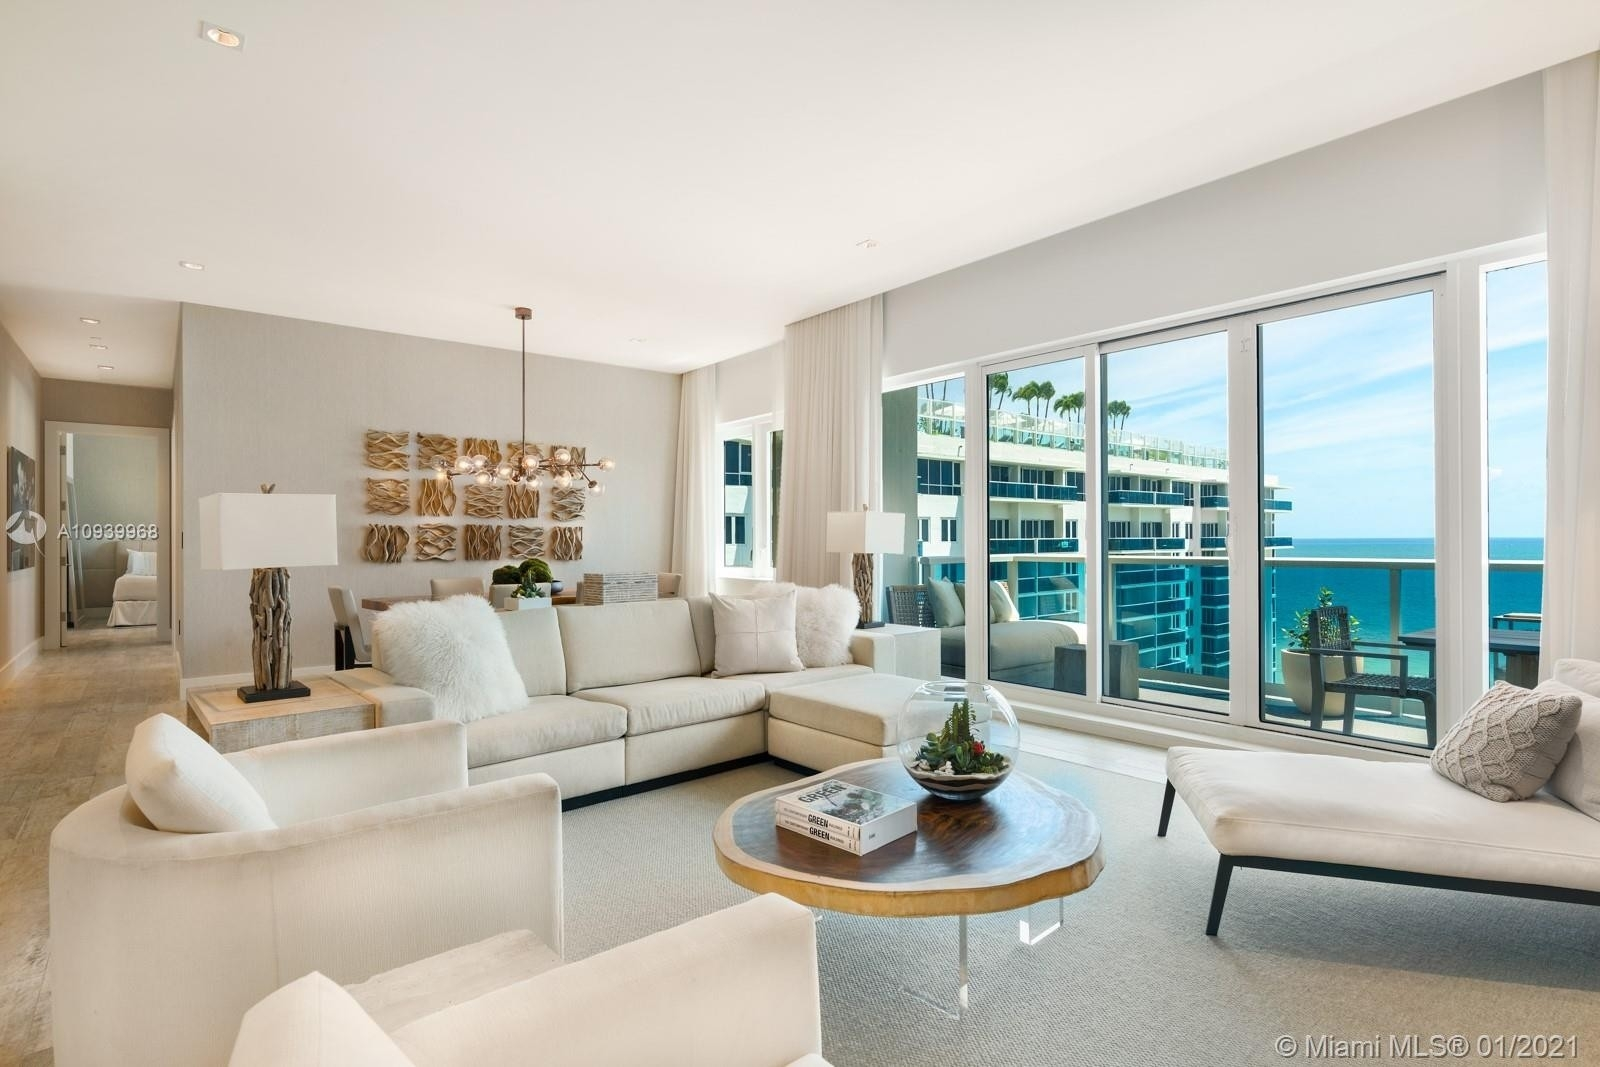 Condominium at 102 24th St , PH-1620 Miami Beach City Center, Miami Beach, FL 33139